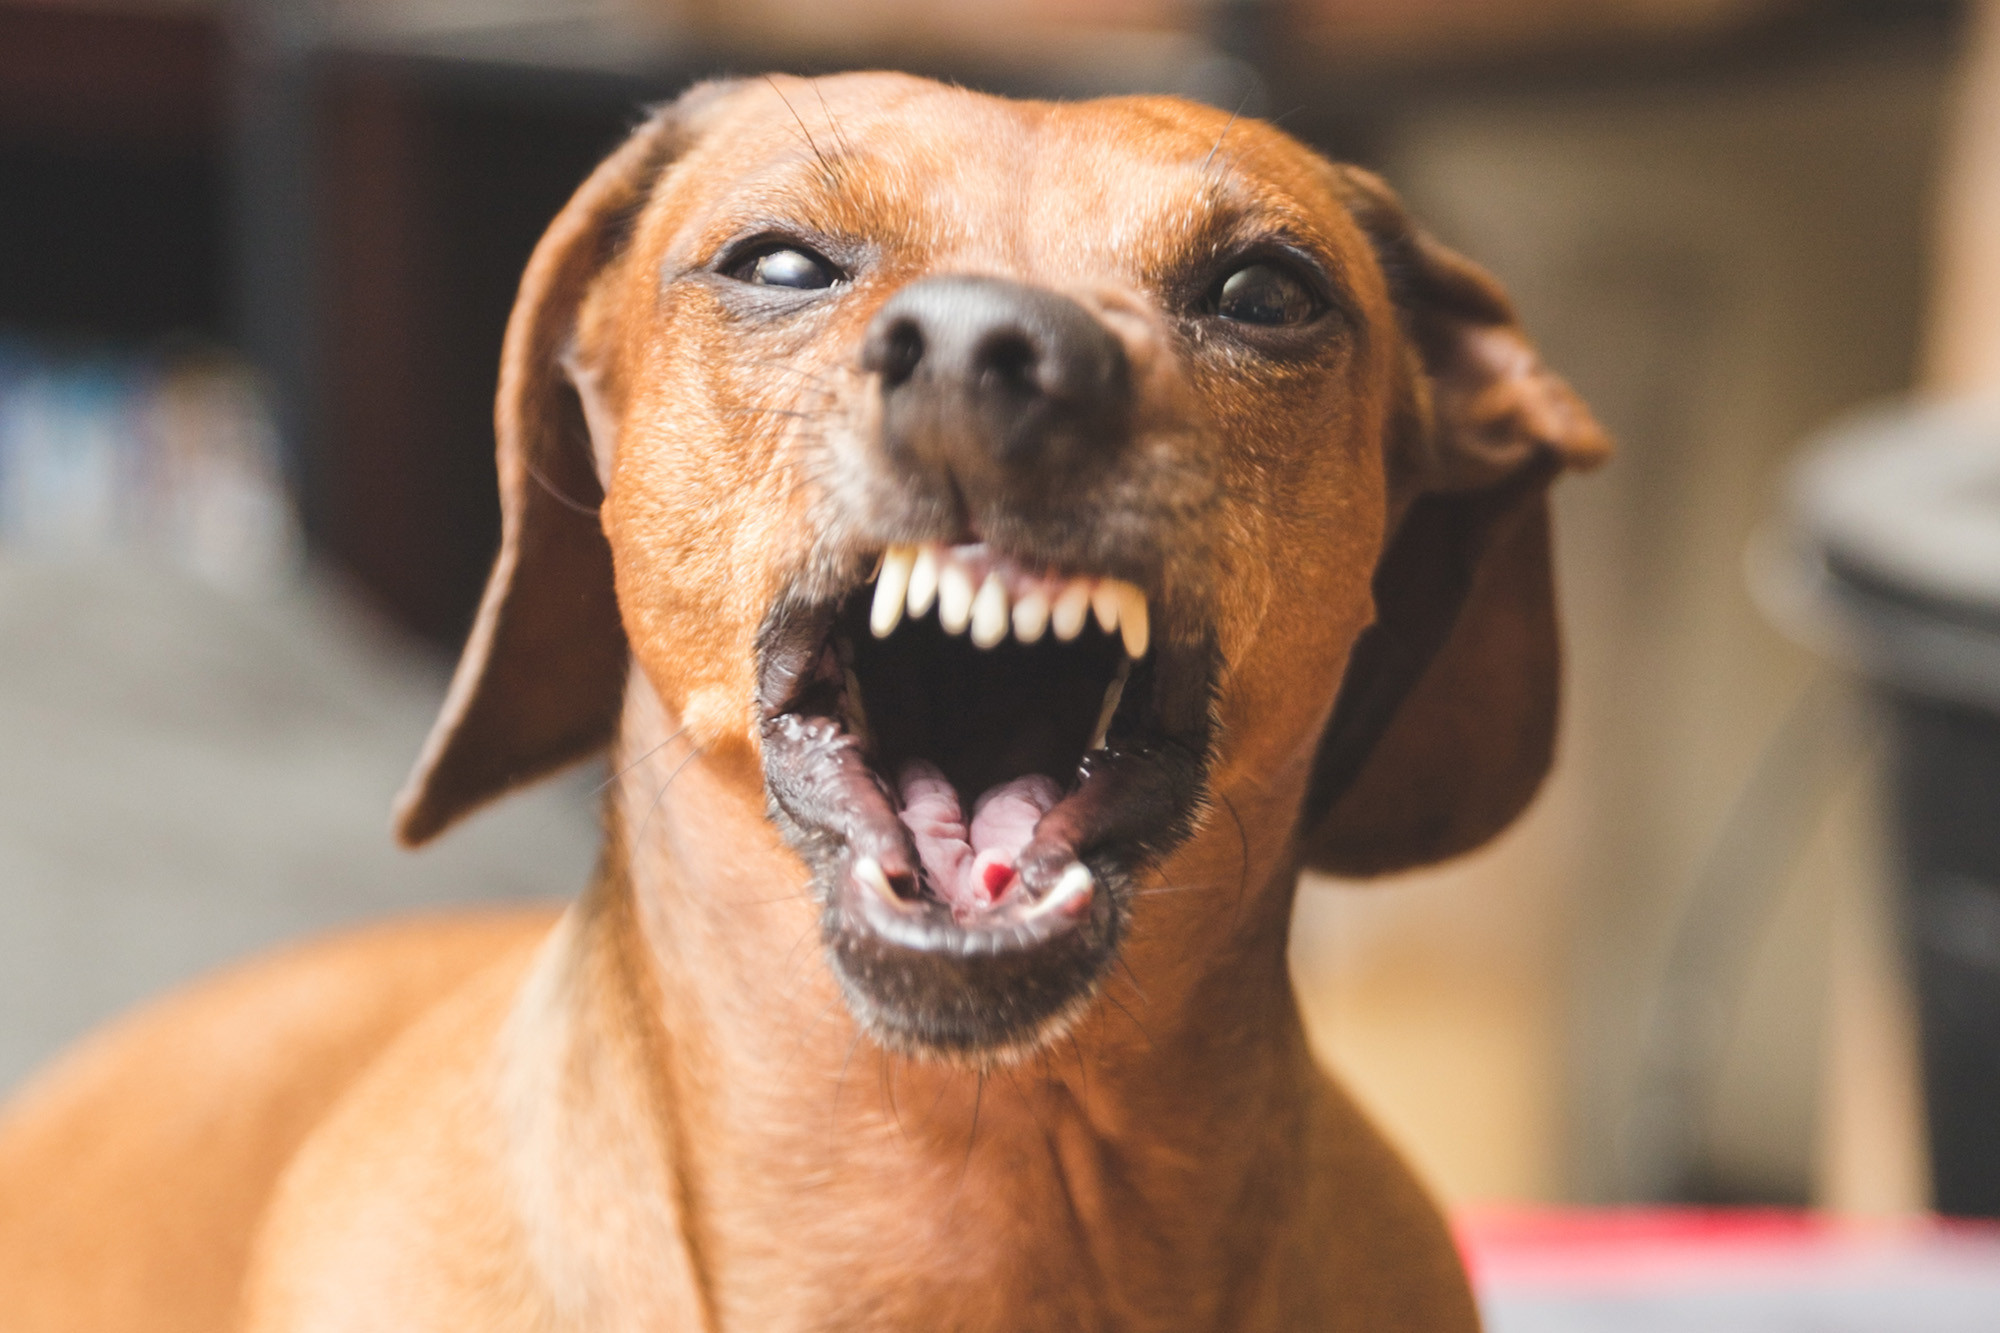 Pack of wiener dogs mauls woman to death